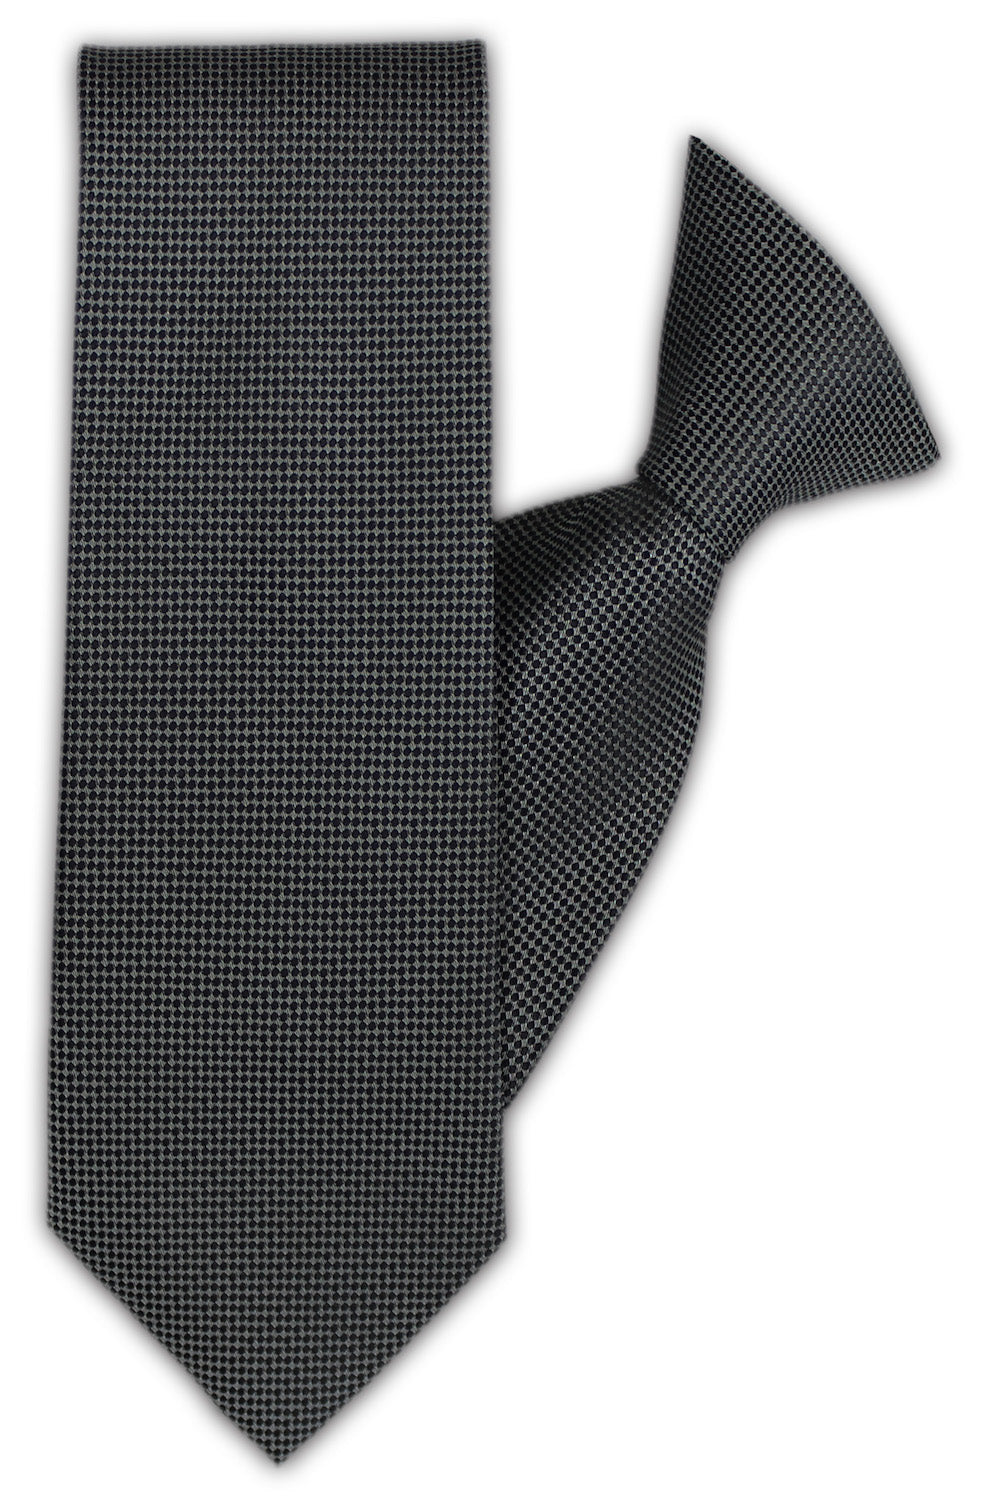 b8eb9f3f894d Grey with Small Navy Spot Clip On Tie (JH-1132)